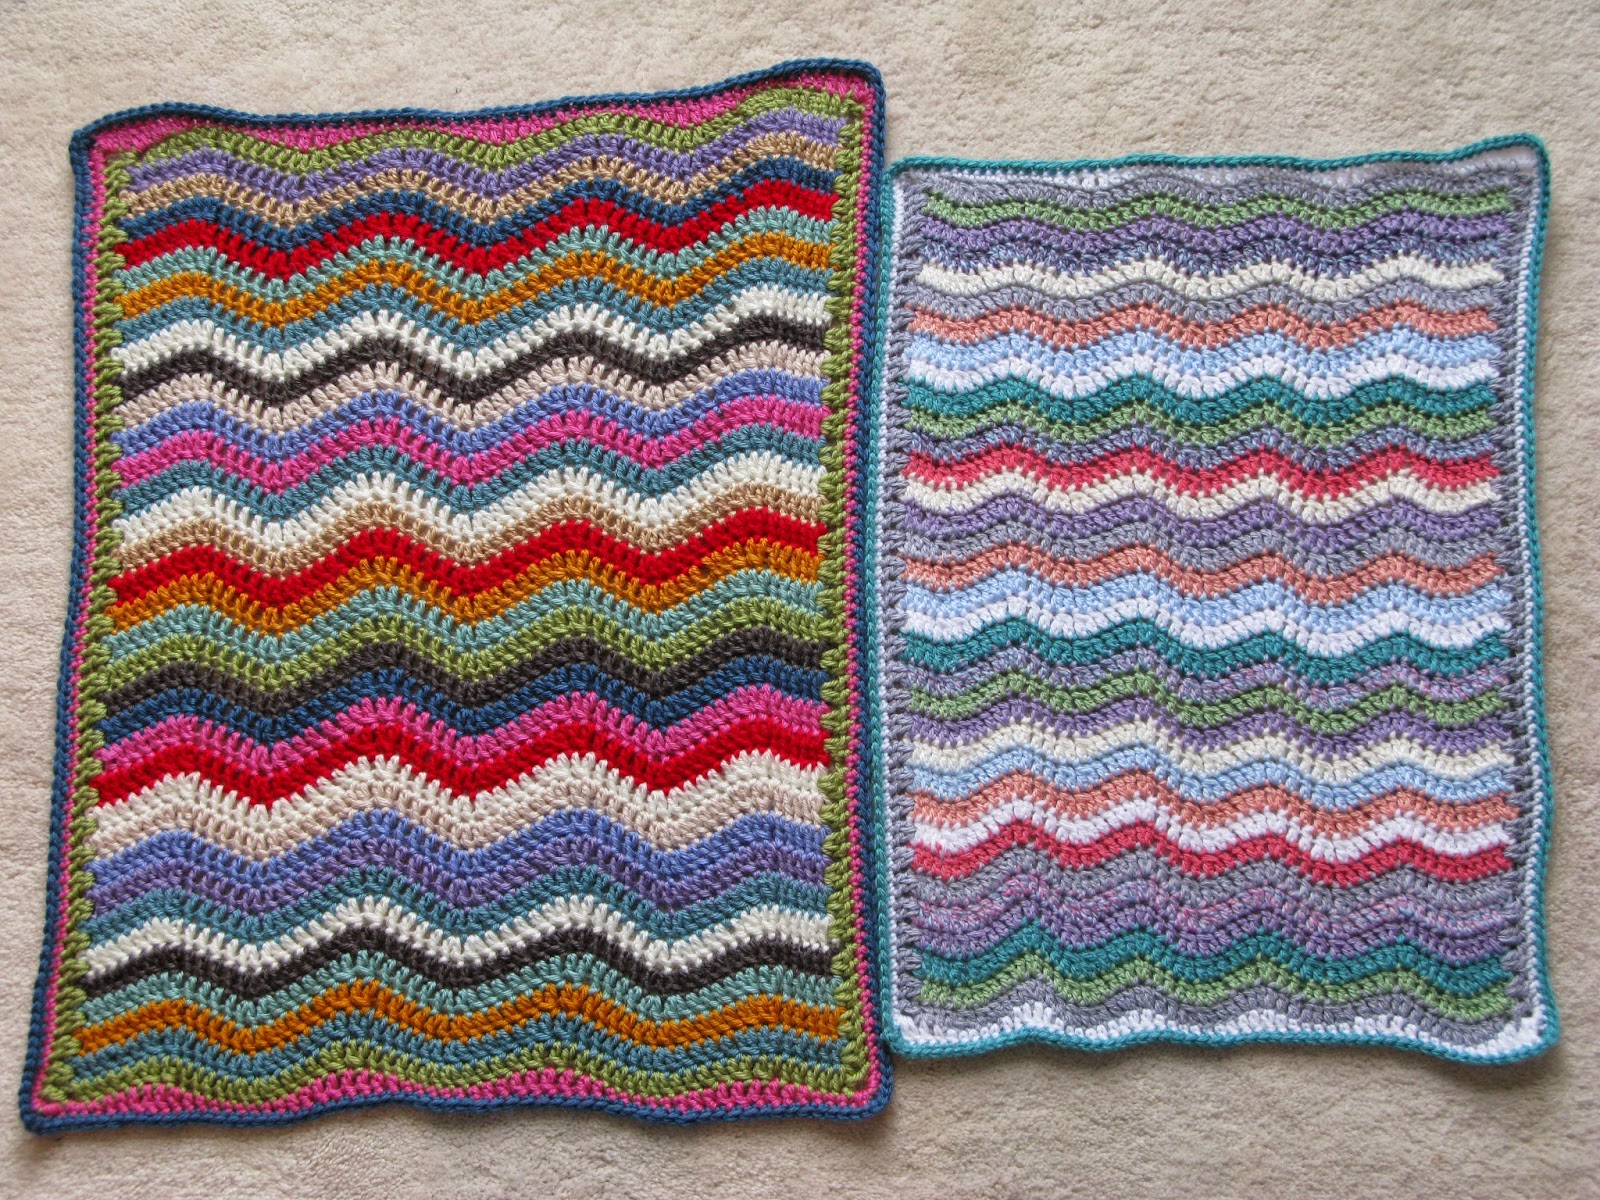 Meo my crochet sweet summer ripple doll blanket its mostly due to the difference in yarn weight and hook size my cosmic rays ripple blanket was made using worsted weight yarn and a 5 mm hook bankloansurffo Images